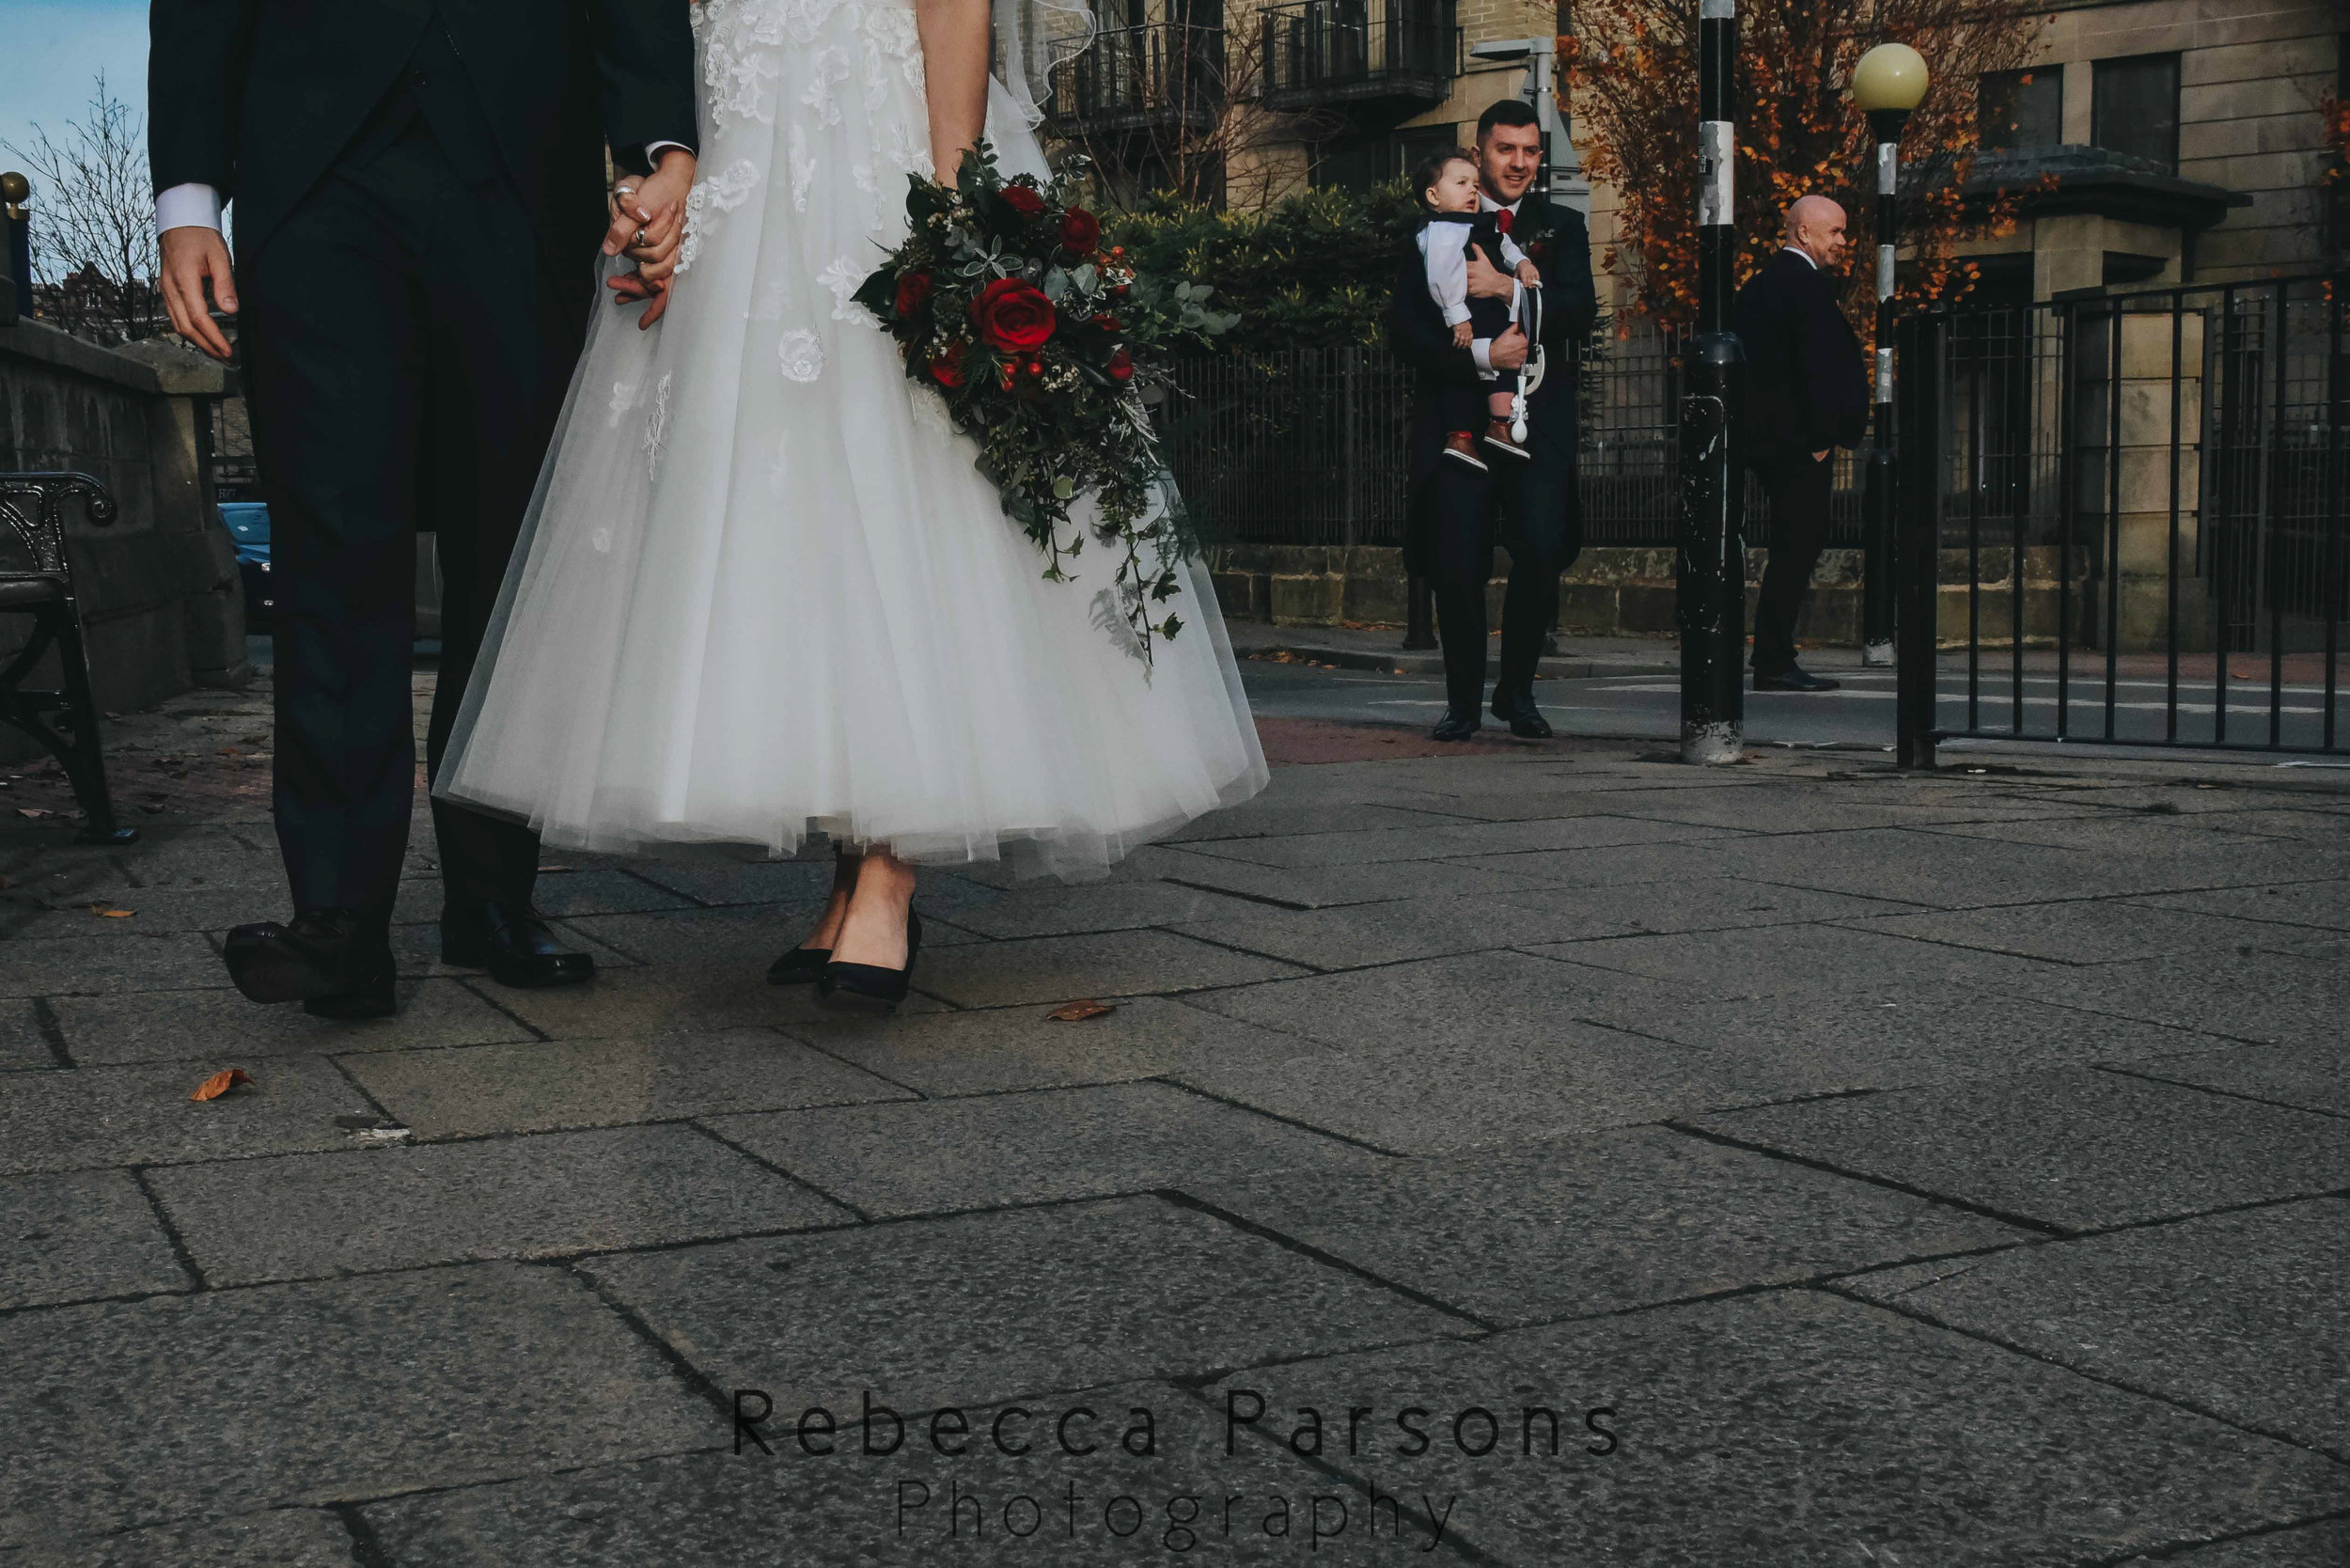 bride and groom shoes with son in background